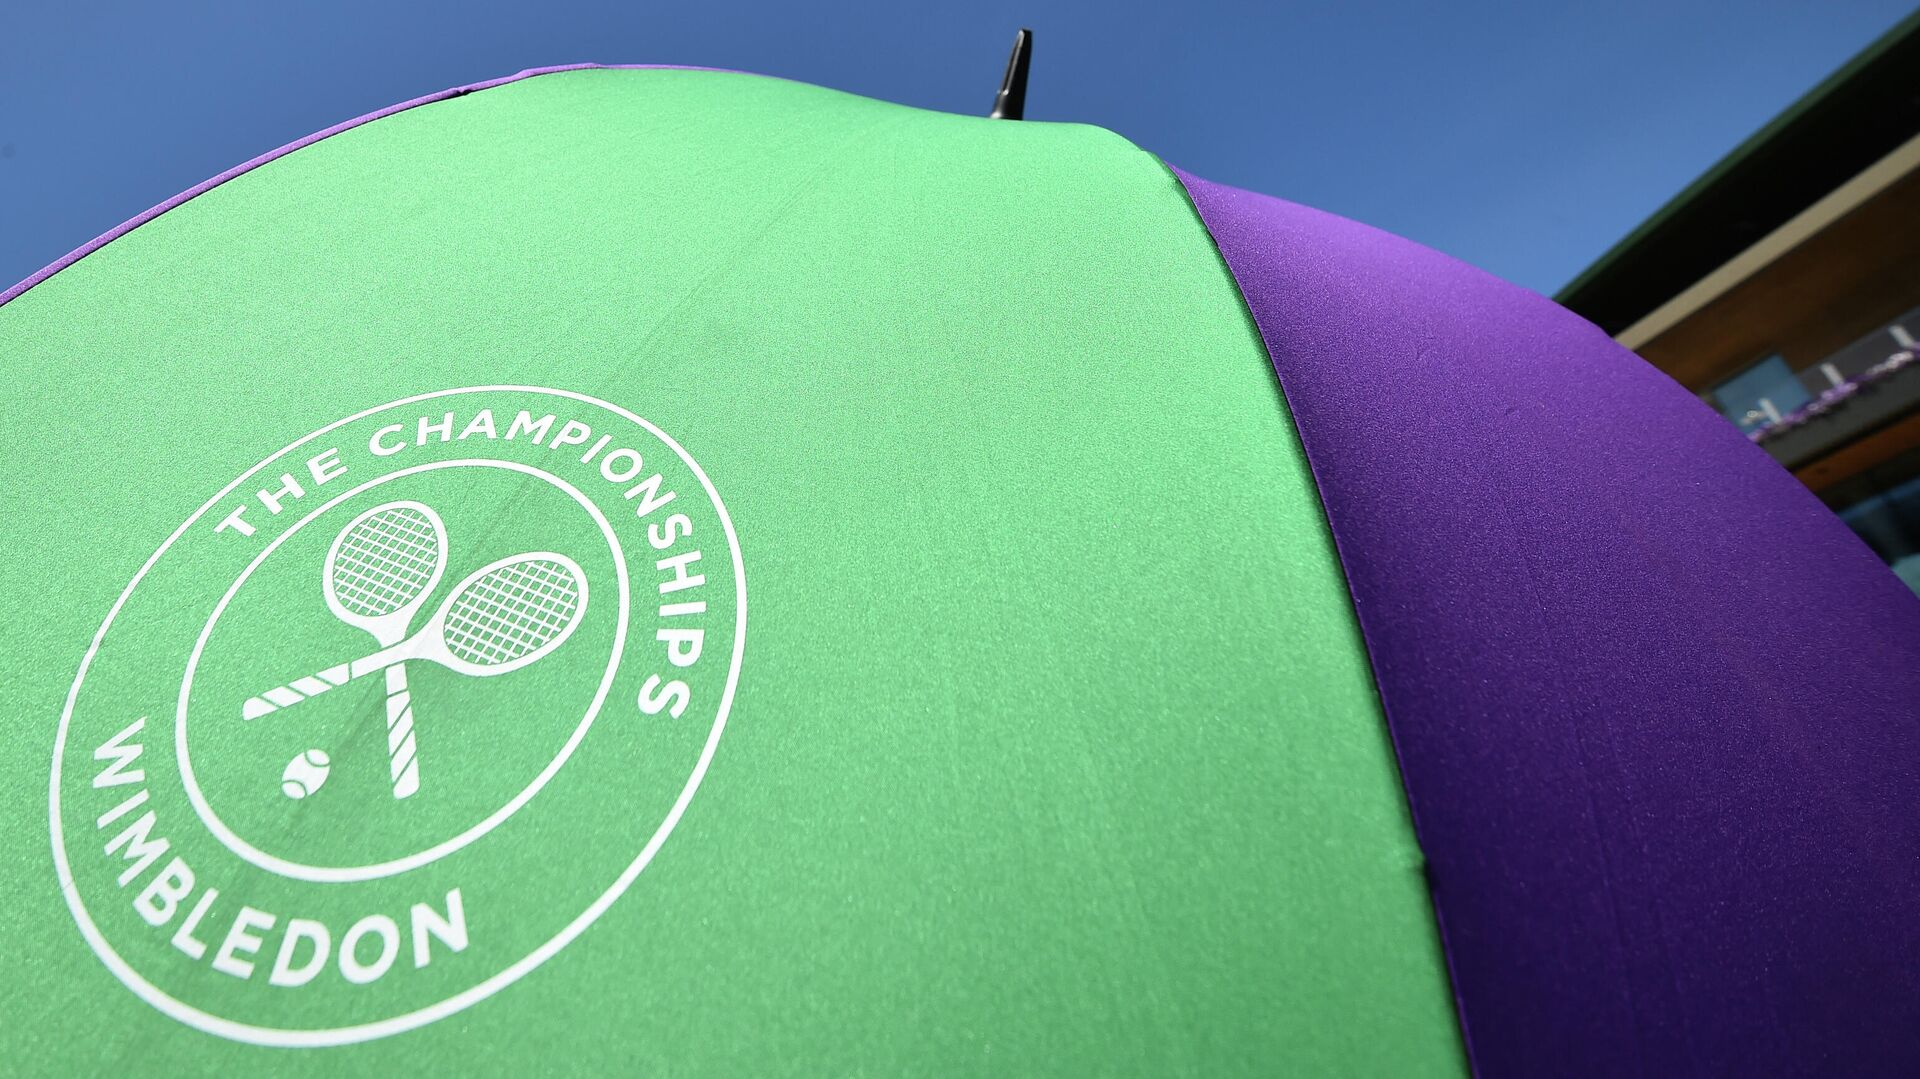 An unmbrella with the Wimbledon Championships tennis tournament's logo is seen at The All England Tennis Club in Wimbledon, southwest London, on July 4, 2019, on the fourth day of the 2019 Wimbledon Championships tennis tournament. (Photo by Glyn KIRK / AFP) / RESTRICTED TO EDITORIAL USE - РИА Новости, 1920, 14.06.2021